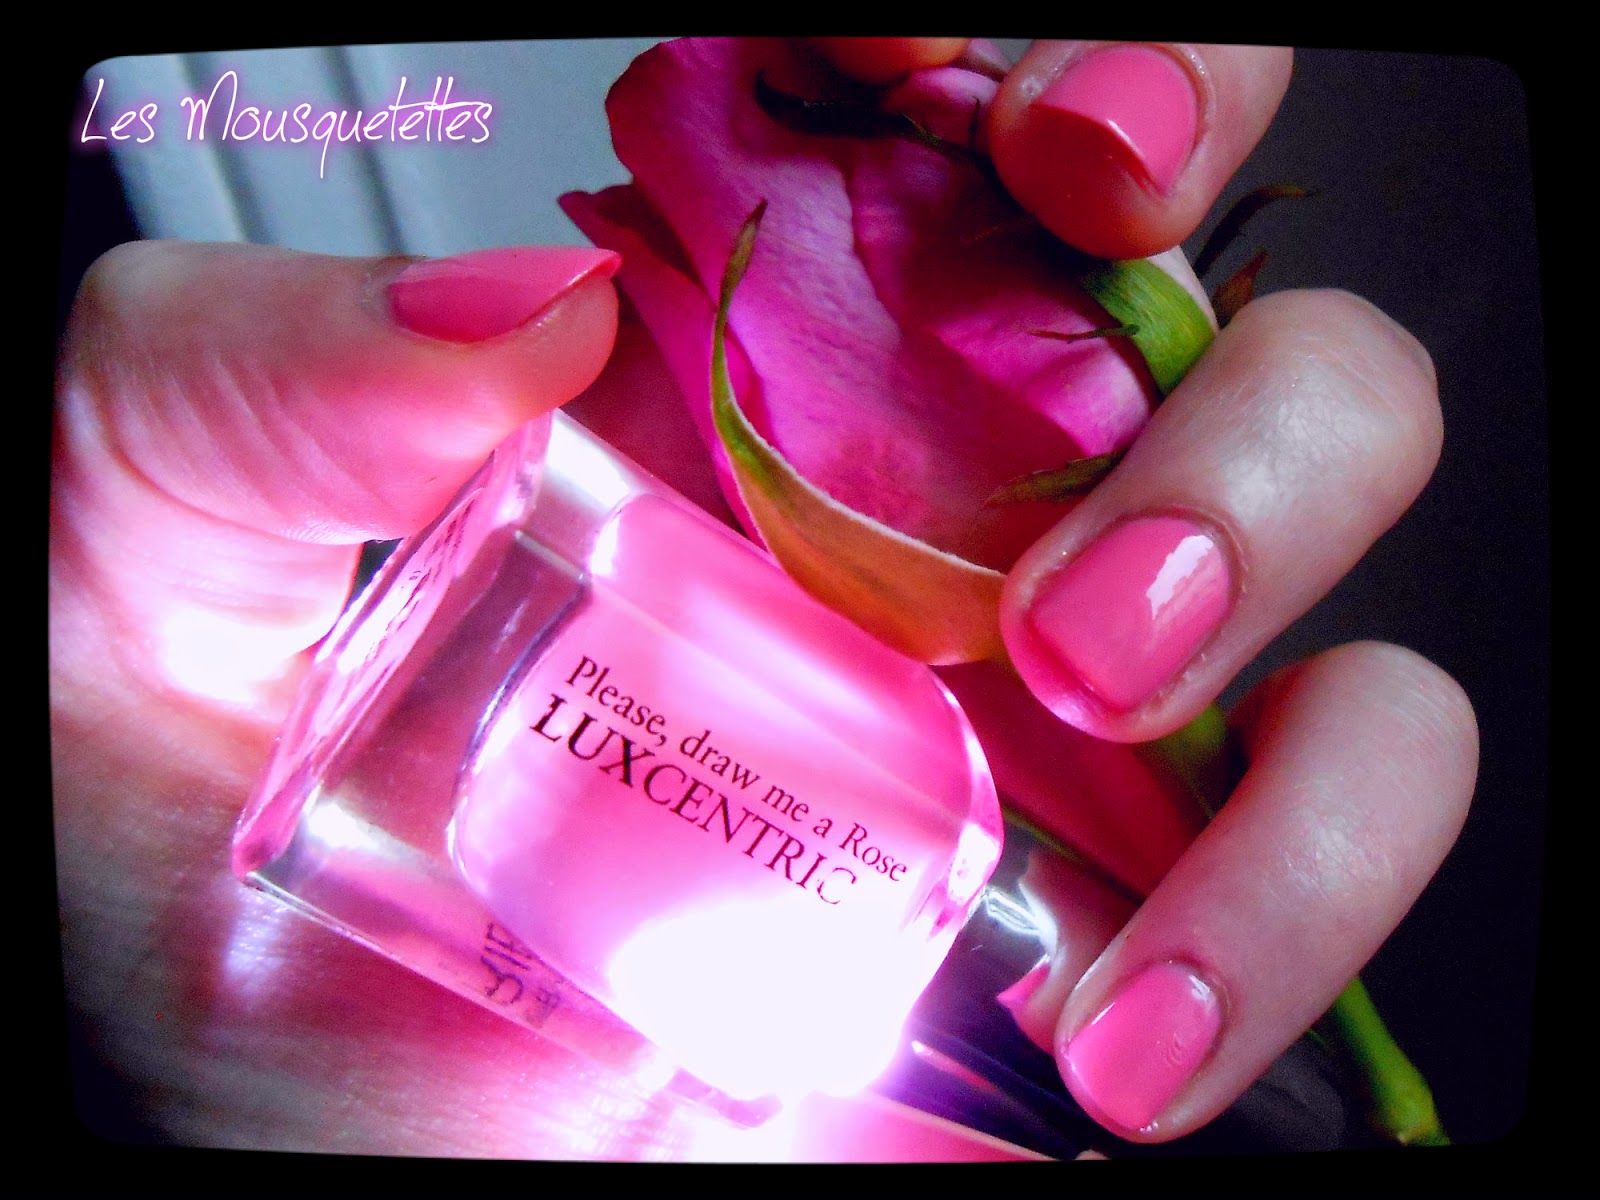 Vernis Please, Draw me a Rose Gregory Ferrié Paris - Les Mousquetettes©